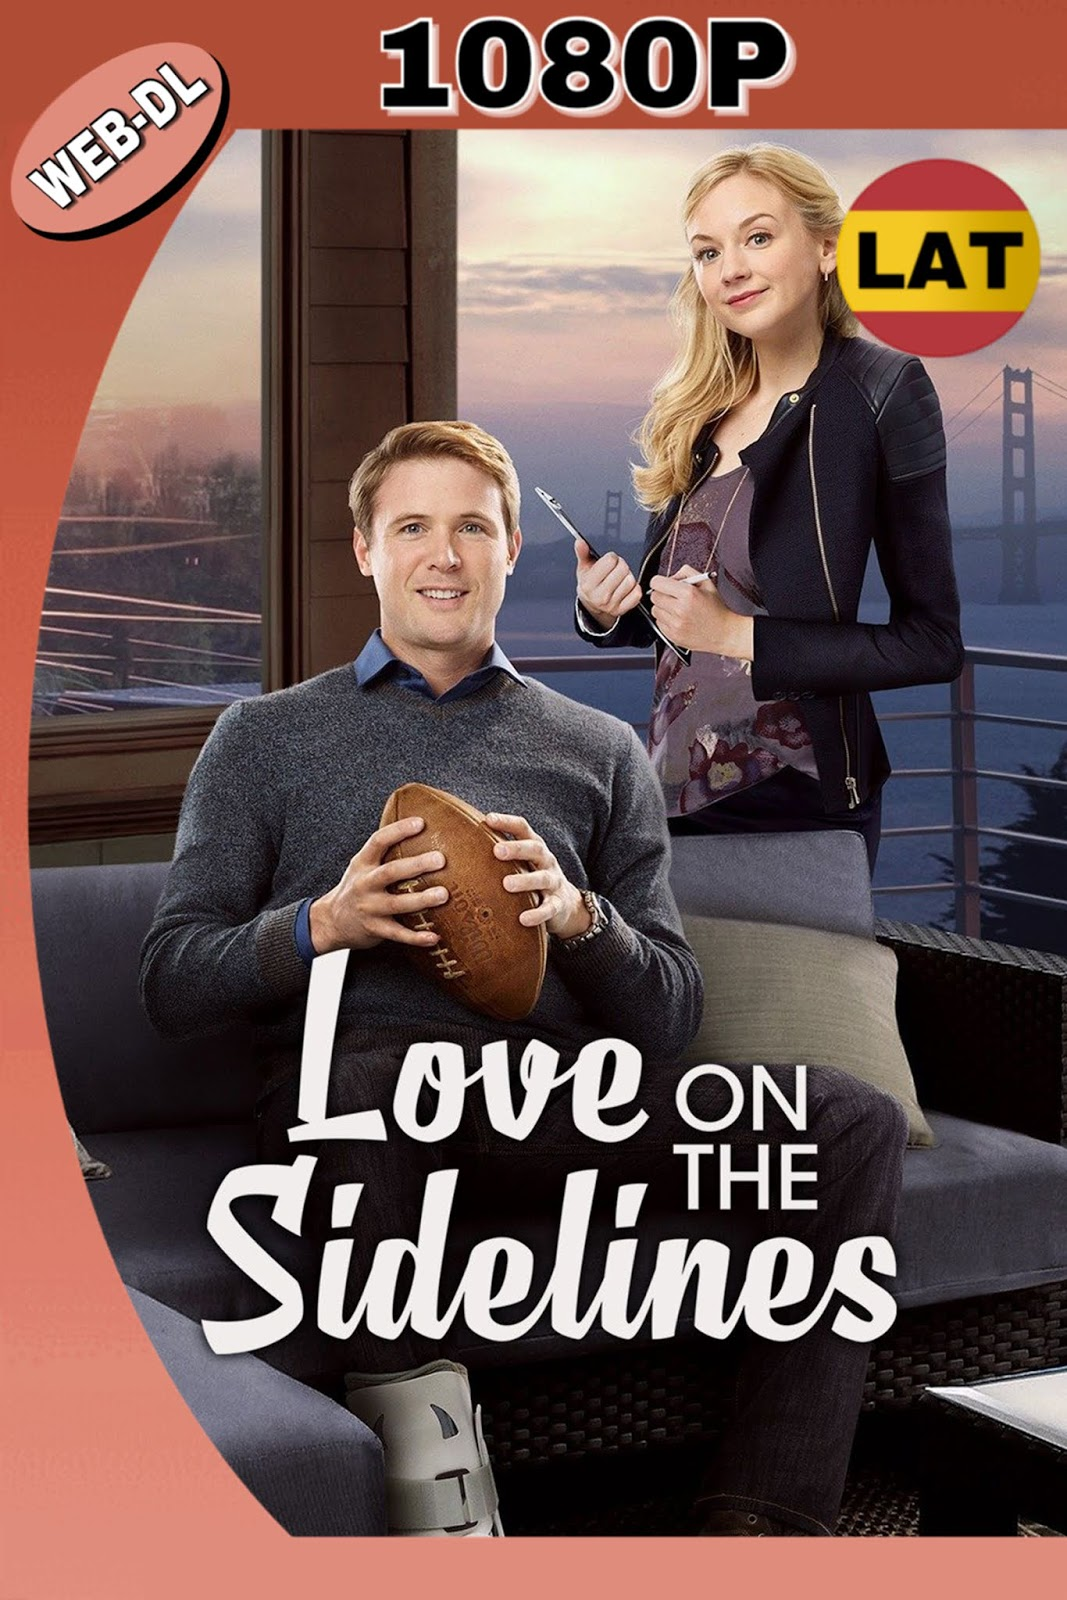 LOVE ON THE SIDELINES 2016 LAT-ING HD WEBDL 1080P 4GB.mkv